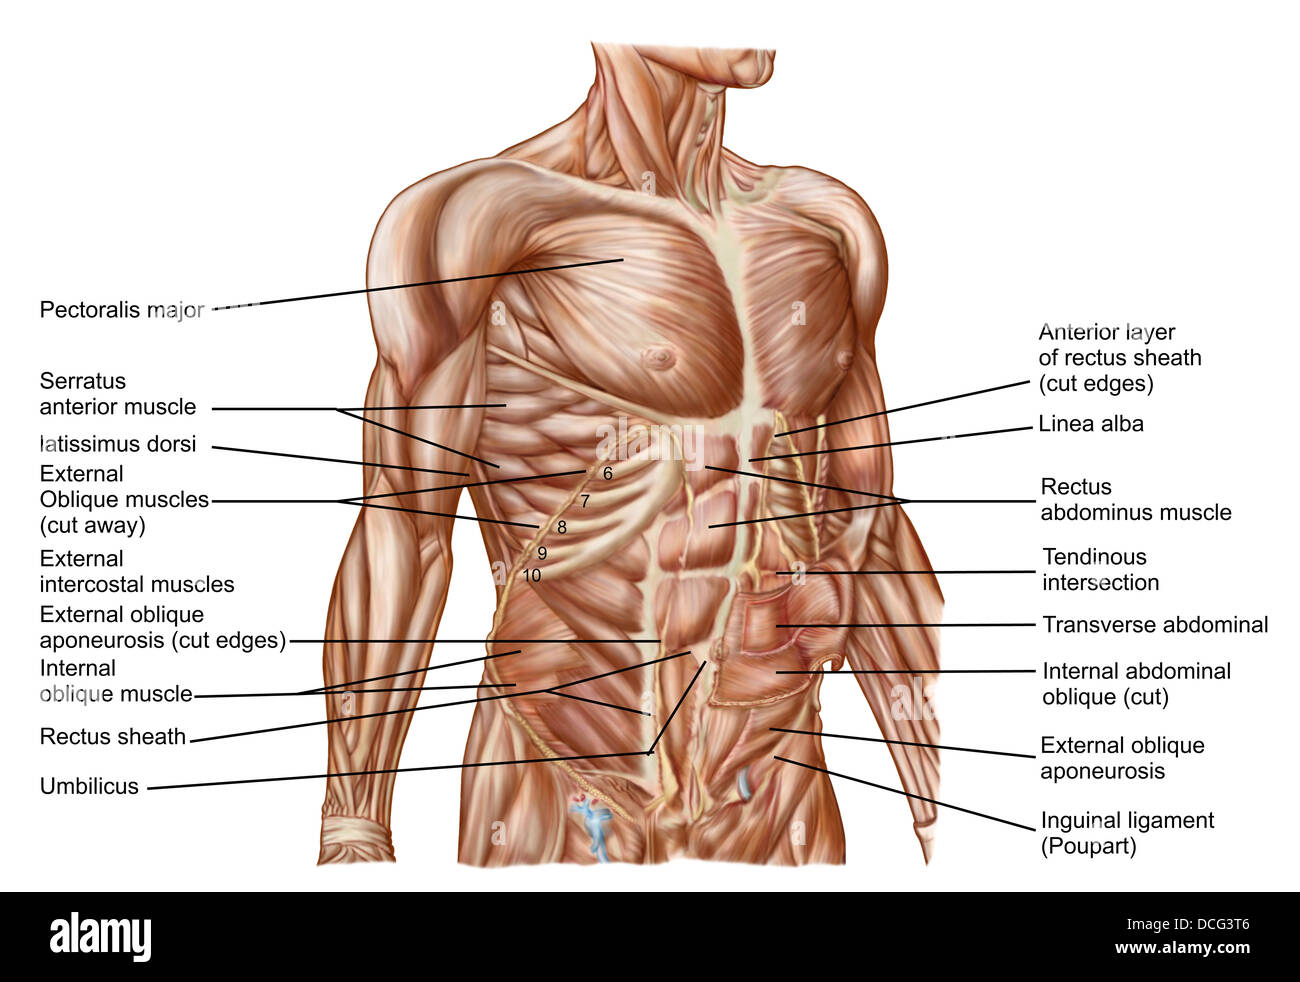 Anatomy of human abdominal muscles Stock Photo: 59361238 - Alamy